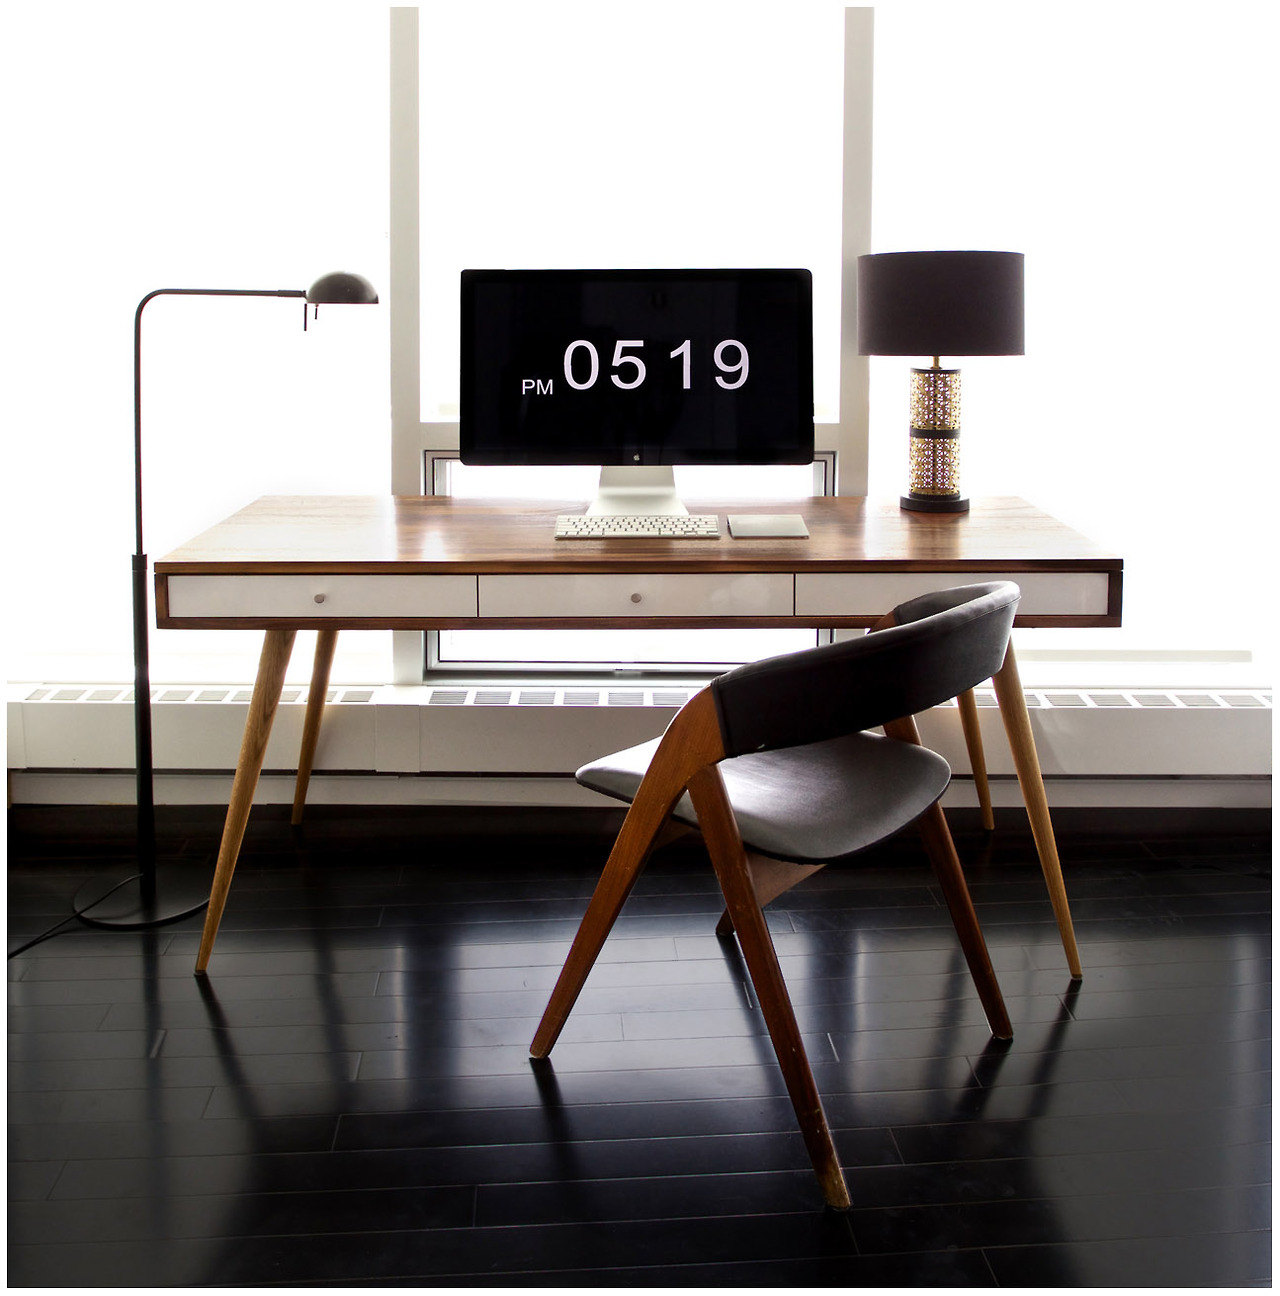 Stylish The Beauty of a Handmade Wooden Office Desk